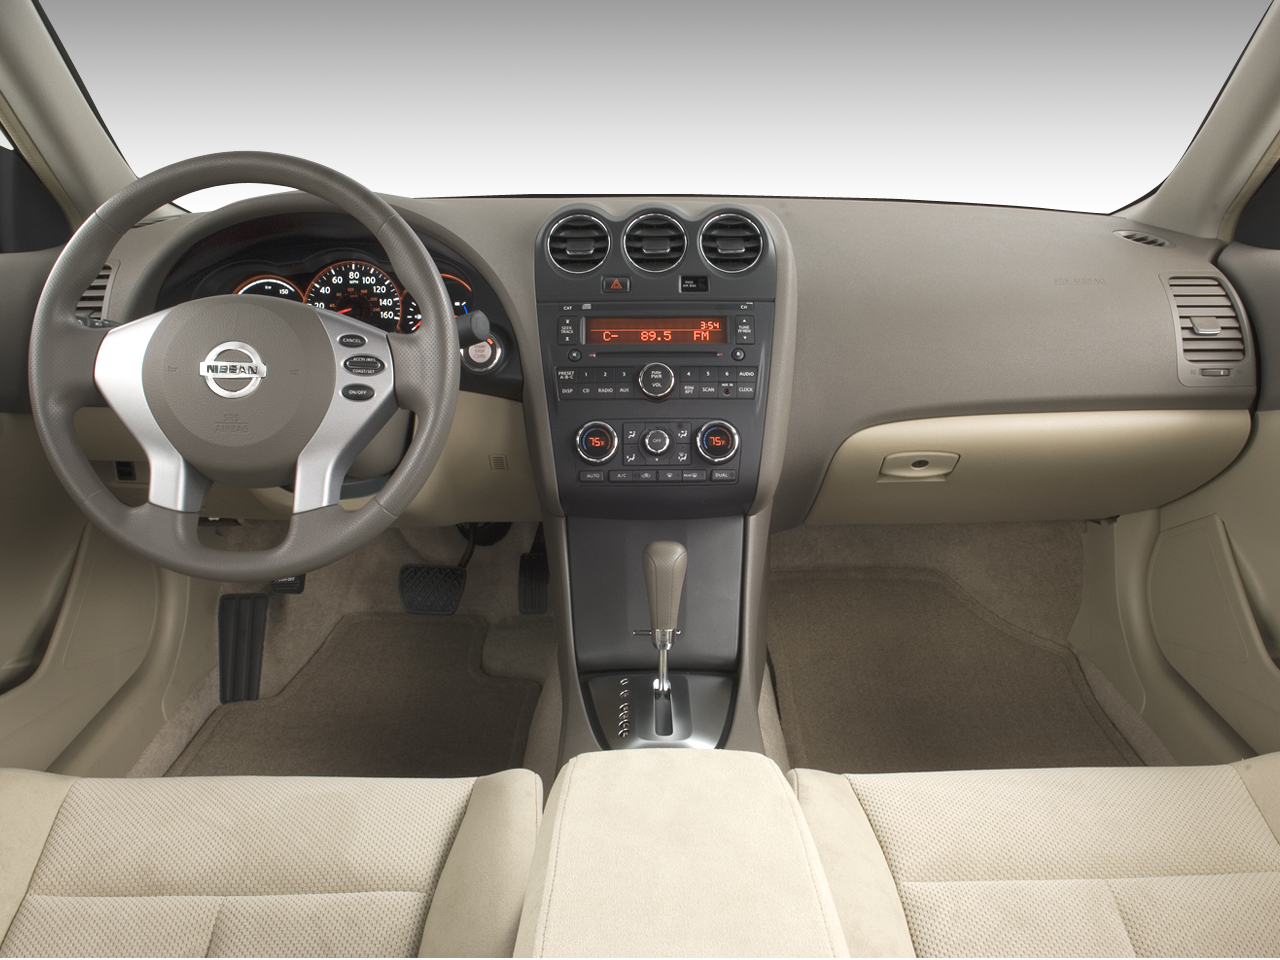 2012 nissan altima white inside gallery hd cars wallpaper 2012 nissan altima cloth interior gallery hd cars wallpaper 2009 nissan maxima white interior image collections vanachro Choice Image